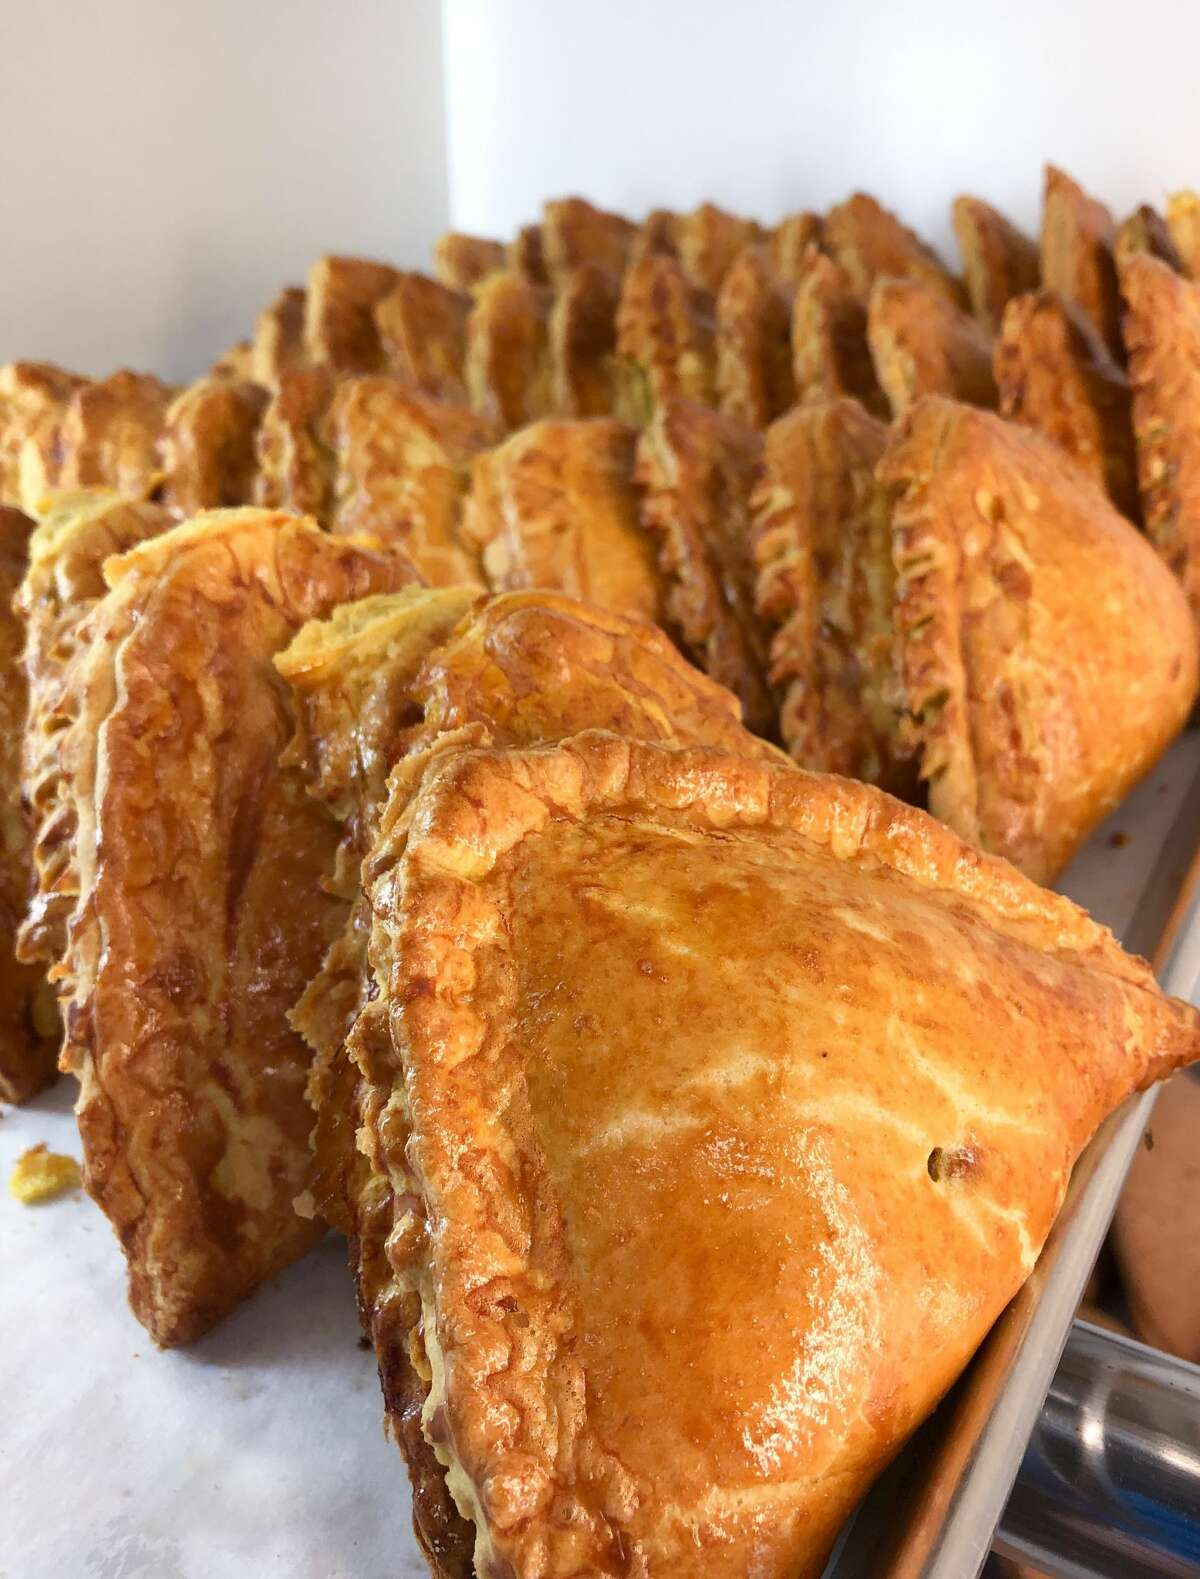 Empanadas Empanadas are soft turnovers that come with a variety of fillings such as apple, pineapple, pumpkin and cheese.